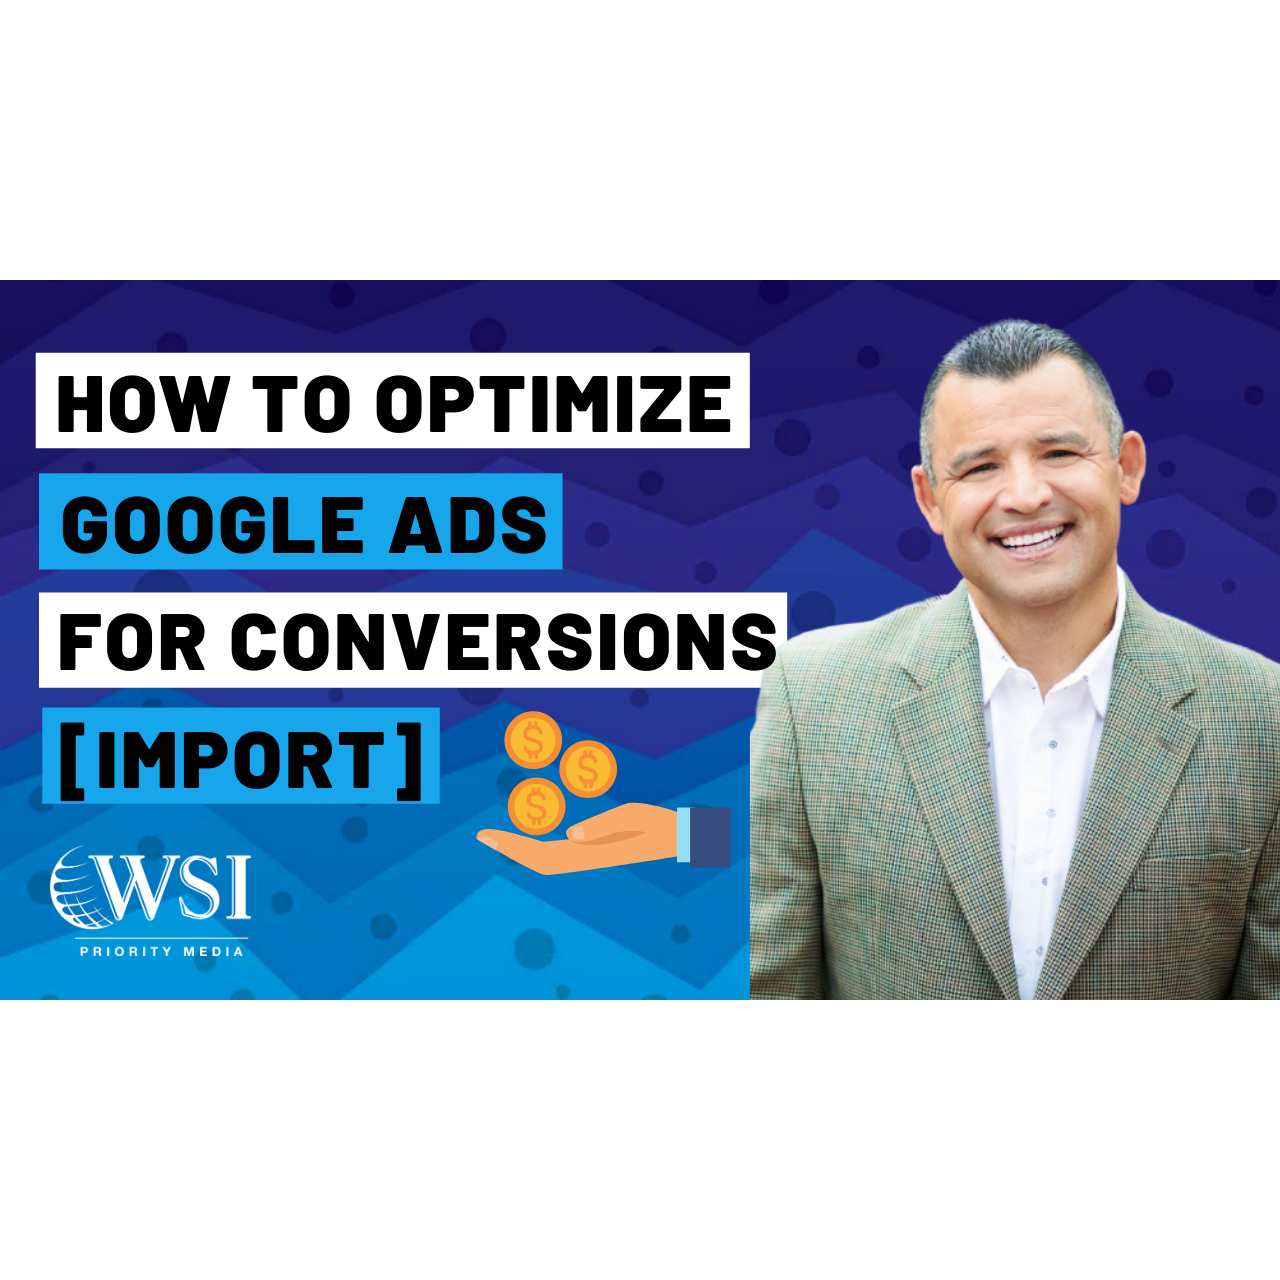 How To Optimize Google Ads For Conversions [IMPORT]